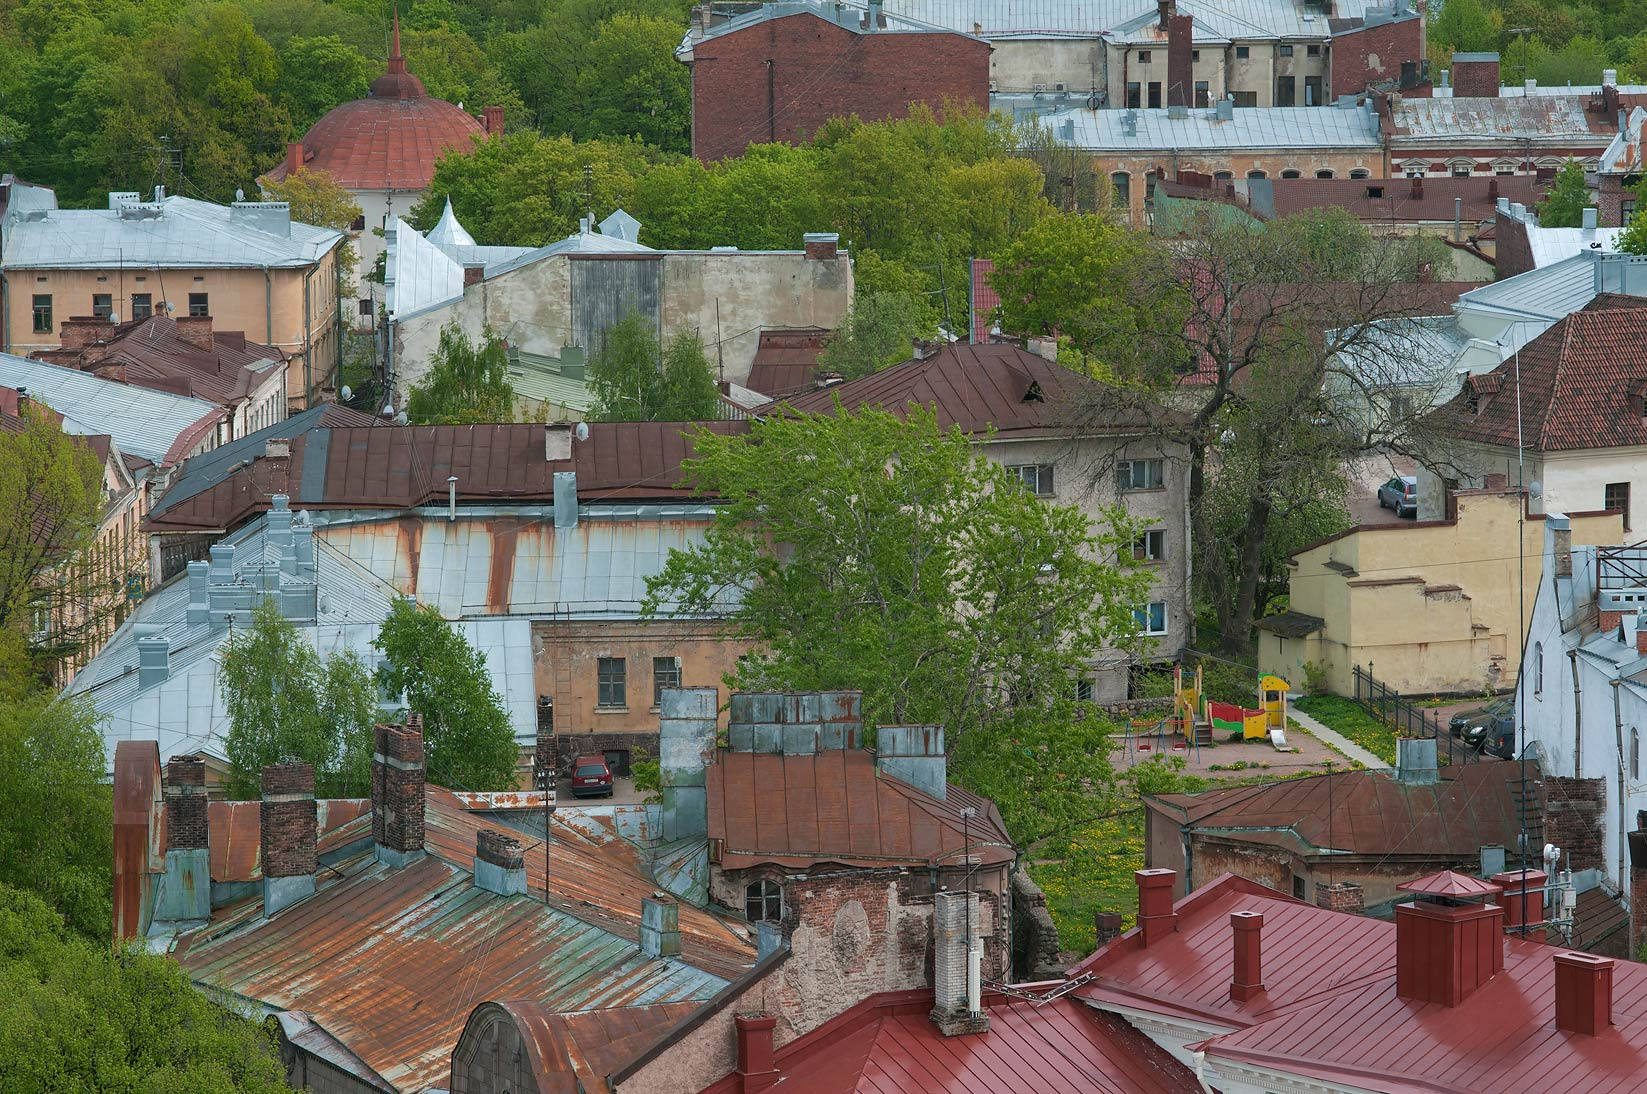 Roofs of Old City from St.Olaf Tower of Vyborg Castle. Vyborg, Russia